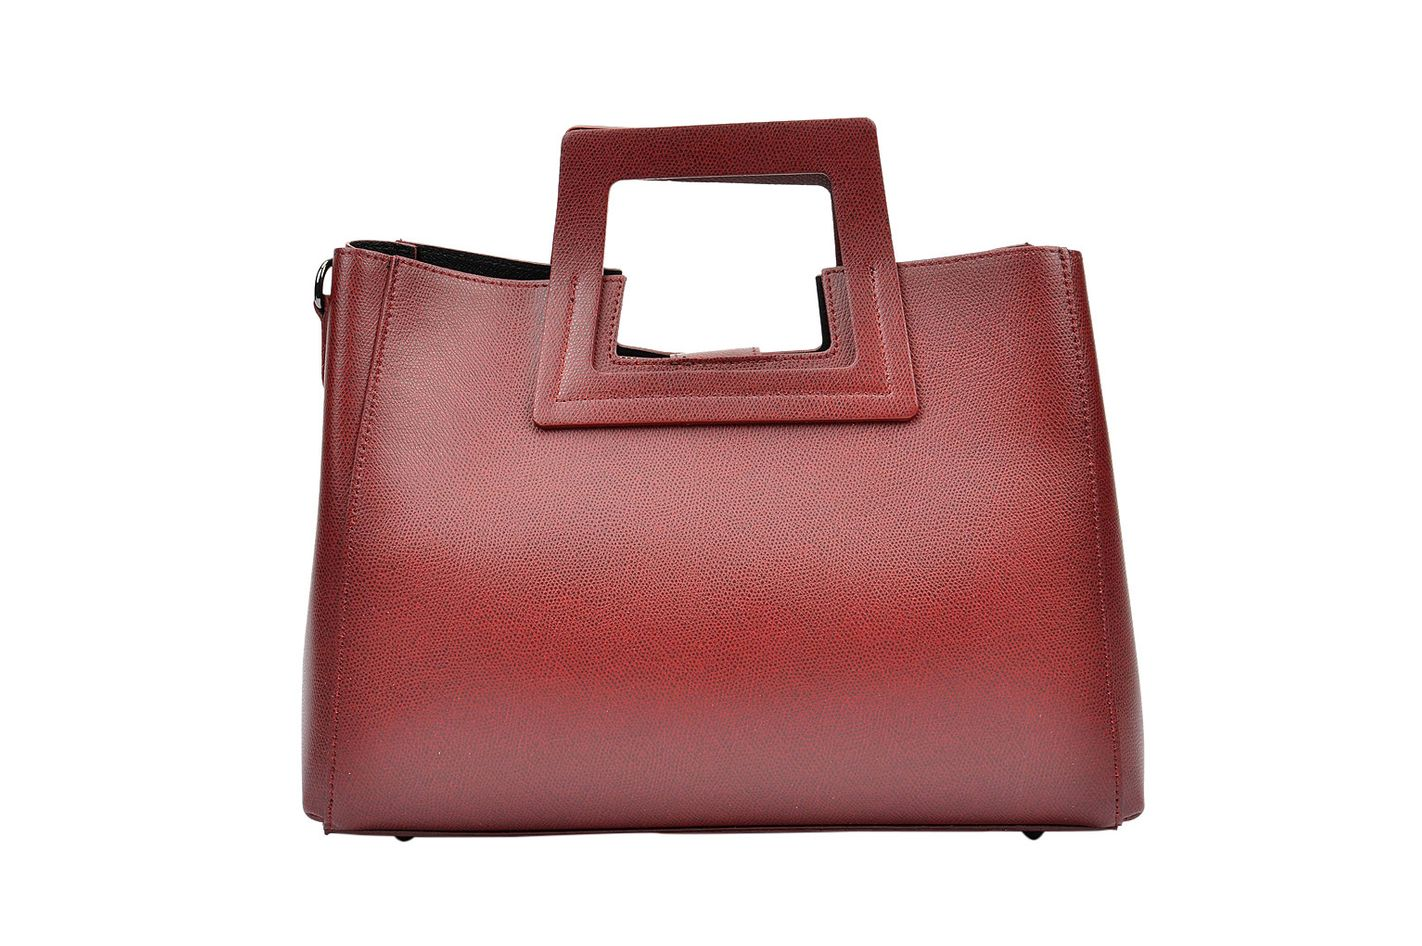 Renata Corsi Wine Square-Handle Leather Tote